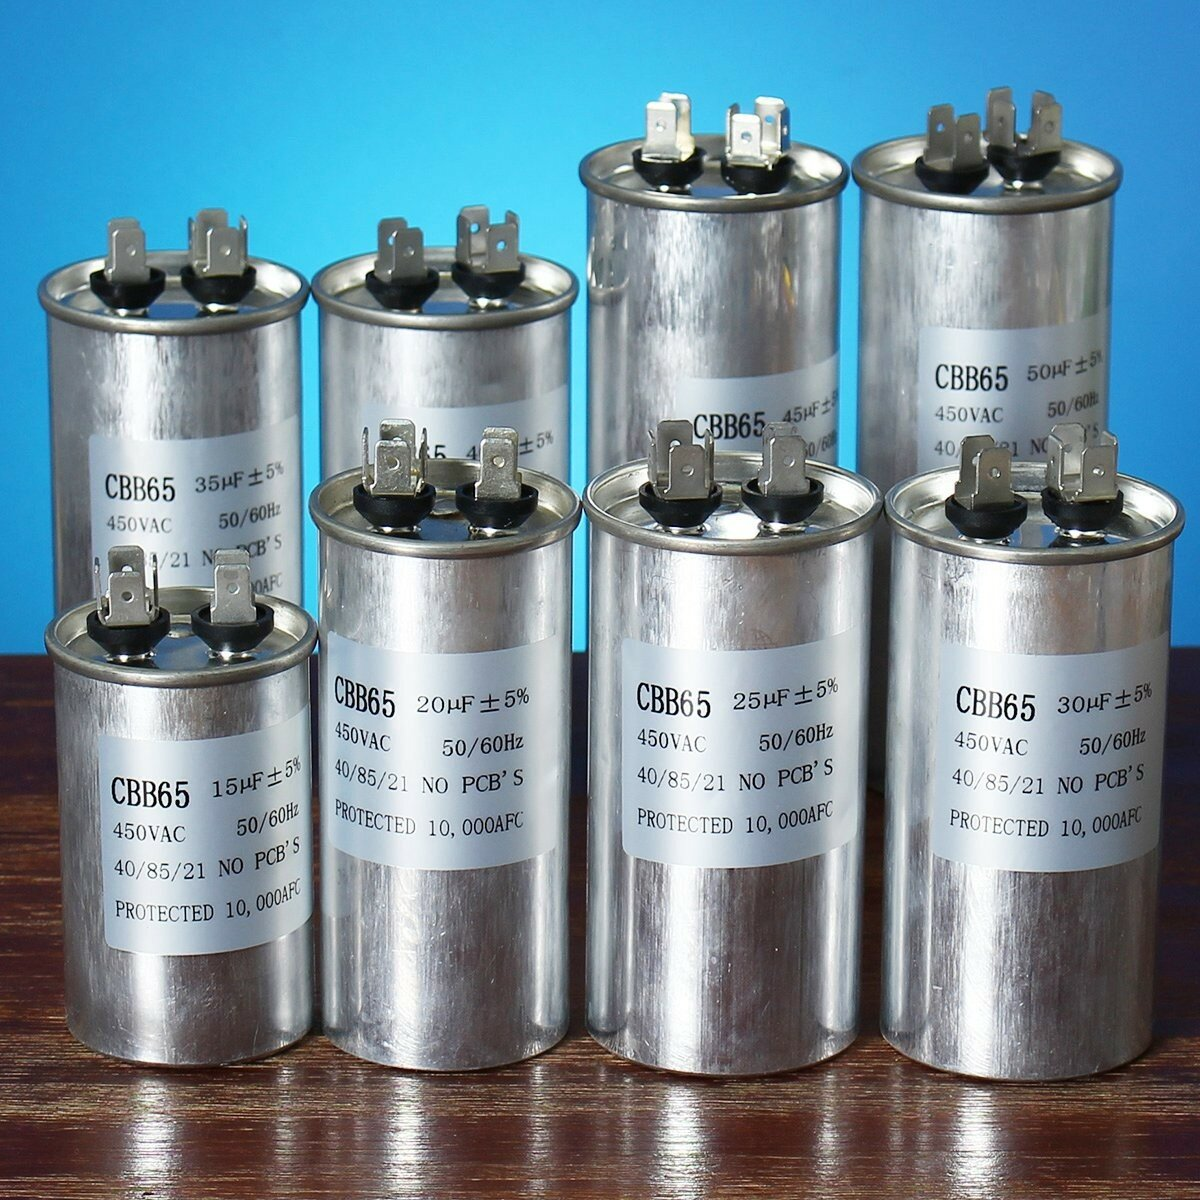 15-50uF Motor Capacitor CBB65 450VAC Air Conditioner Compressor Start  Capacitor